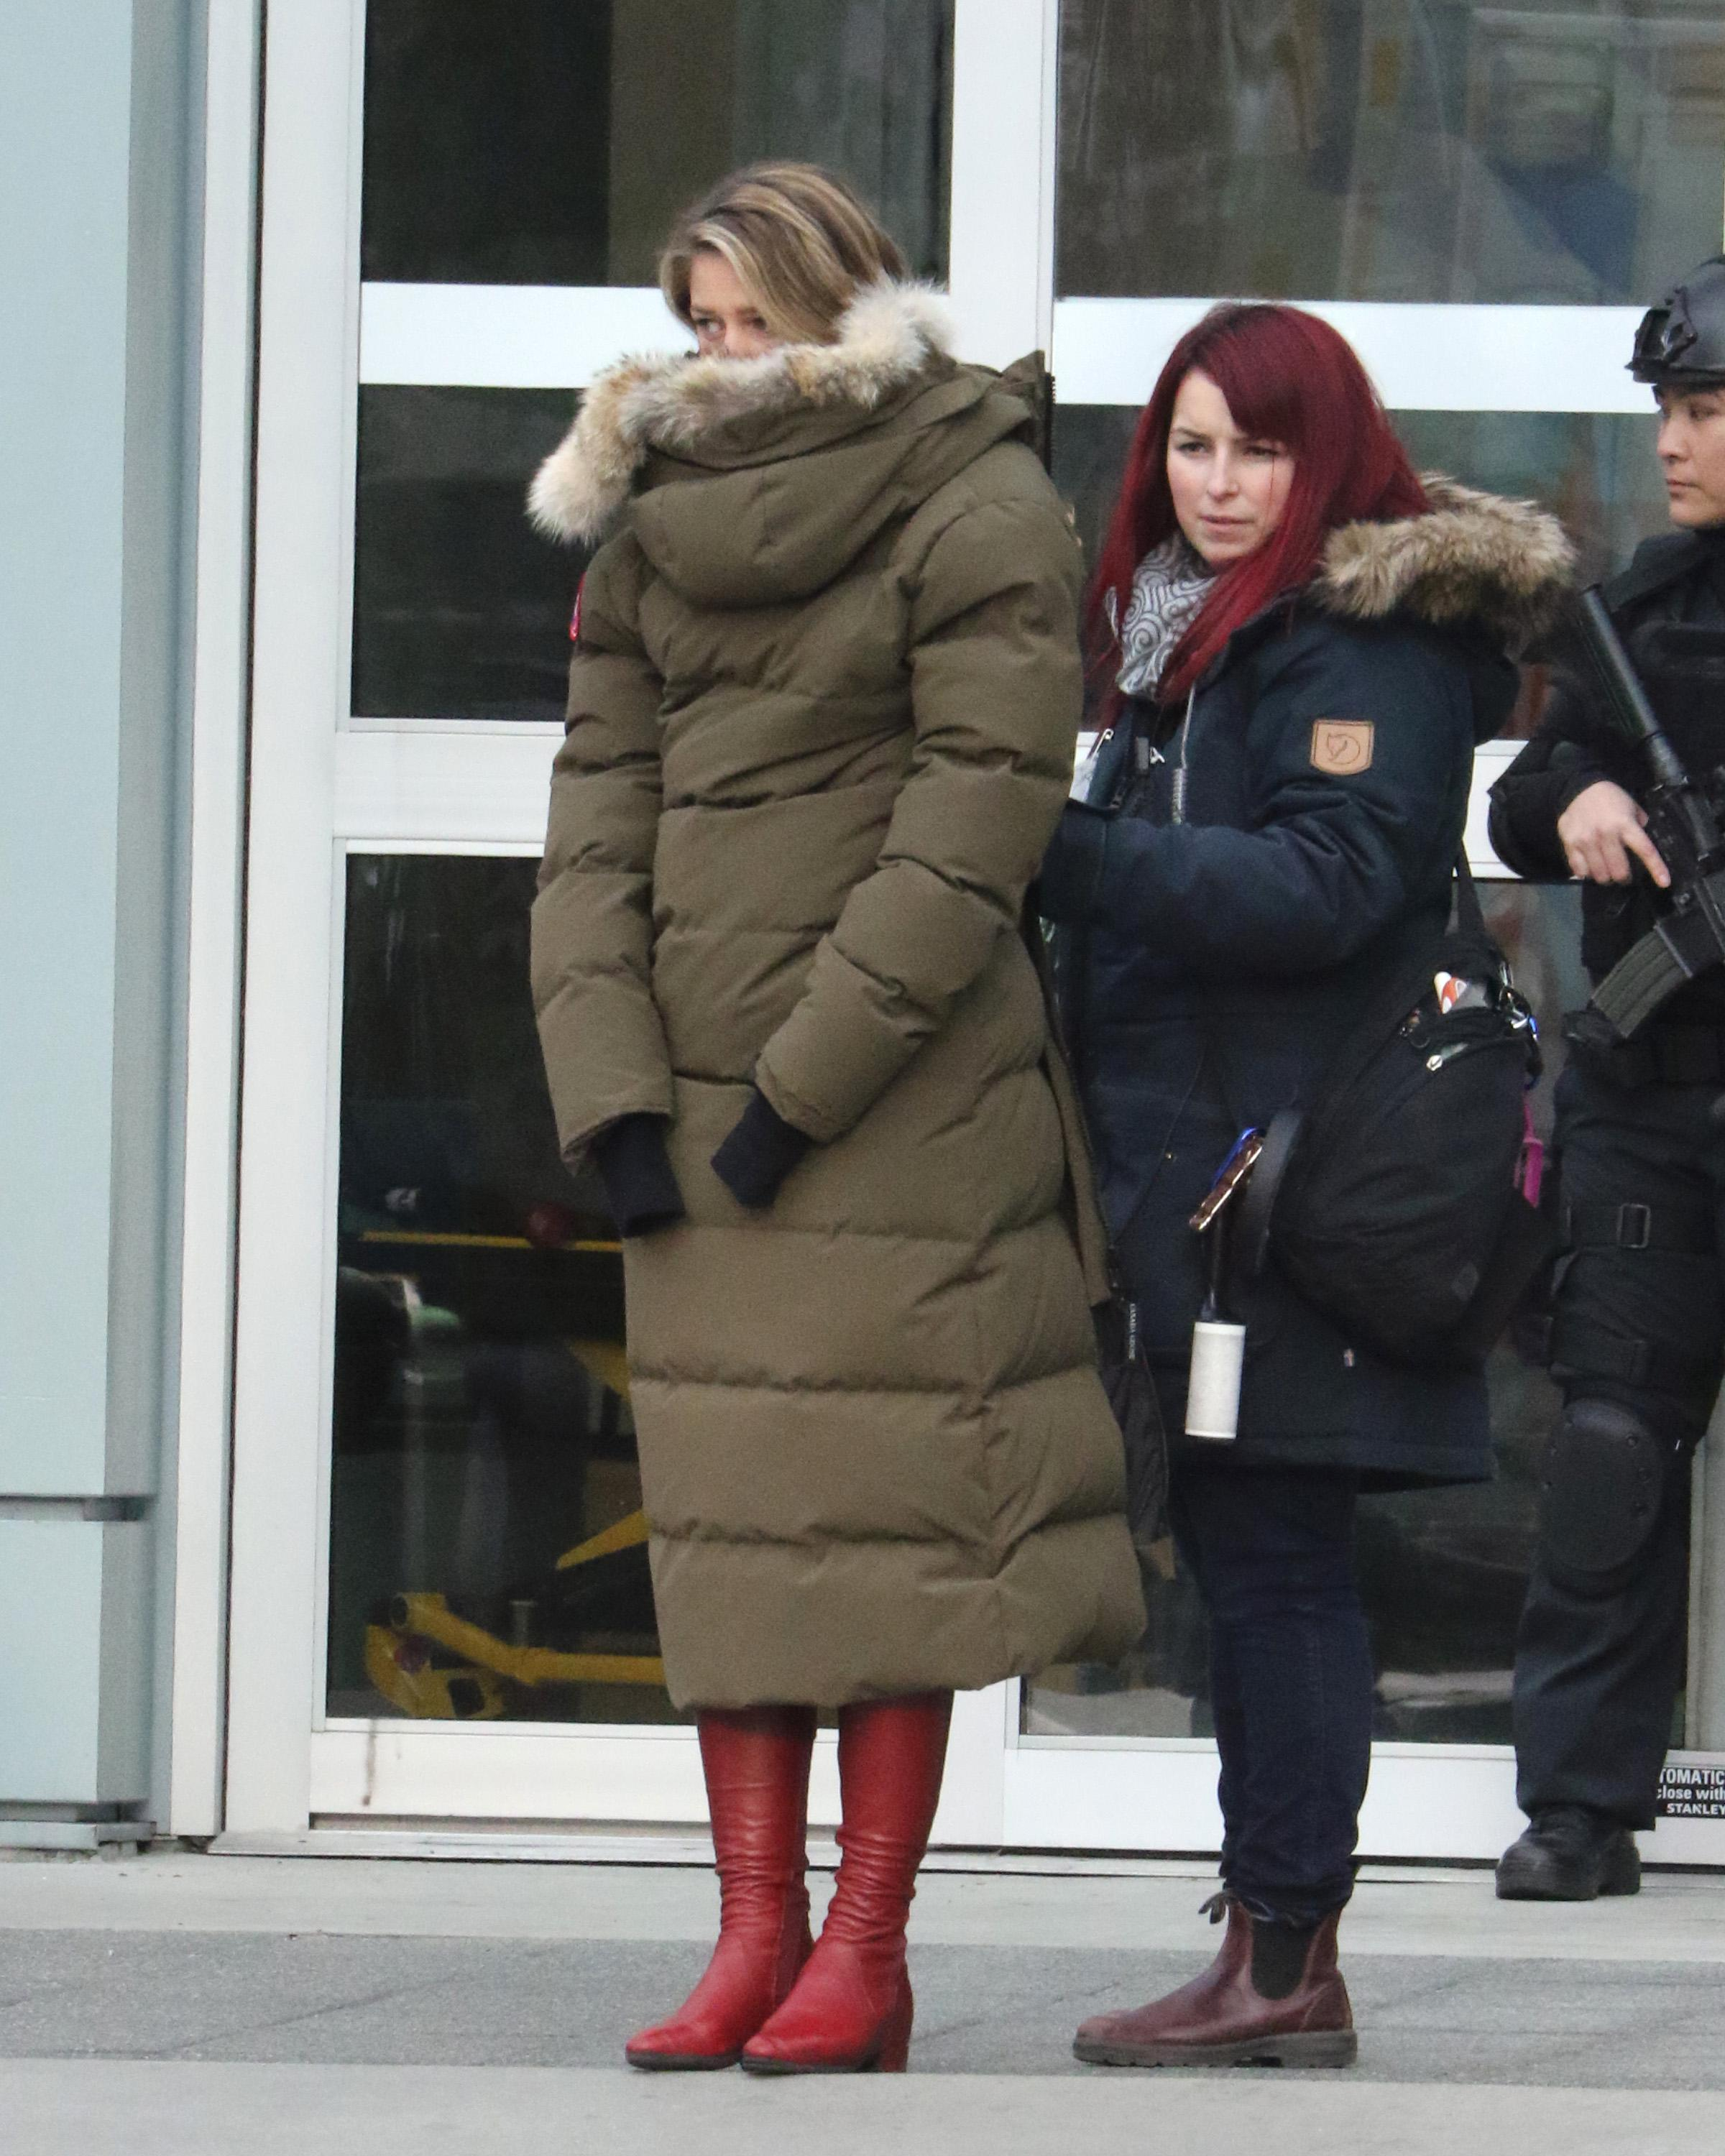 Melissa Benoist Films 'Supergirl' In Vancouver (PHOTOS